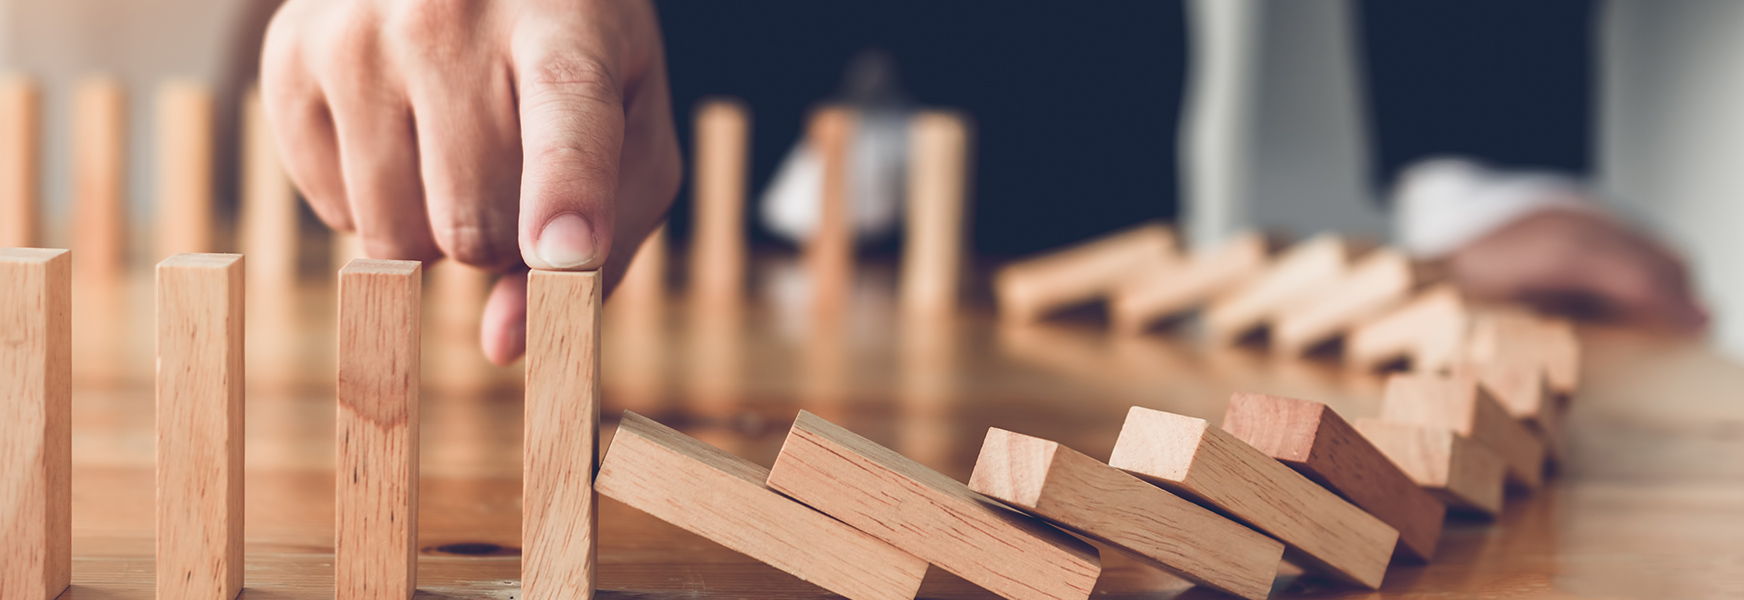 Man with finger on falling dominoes